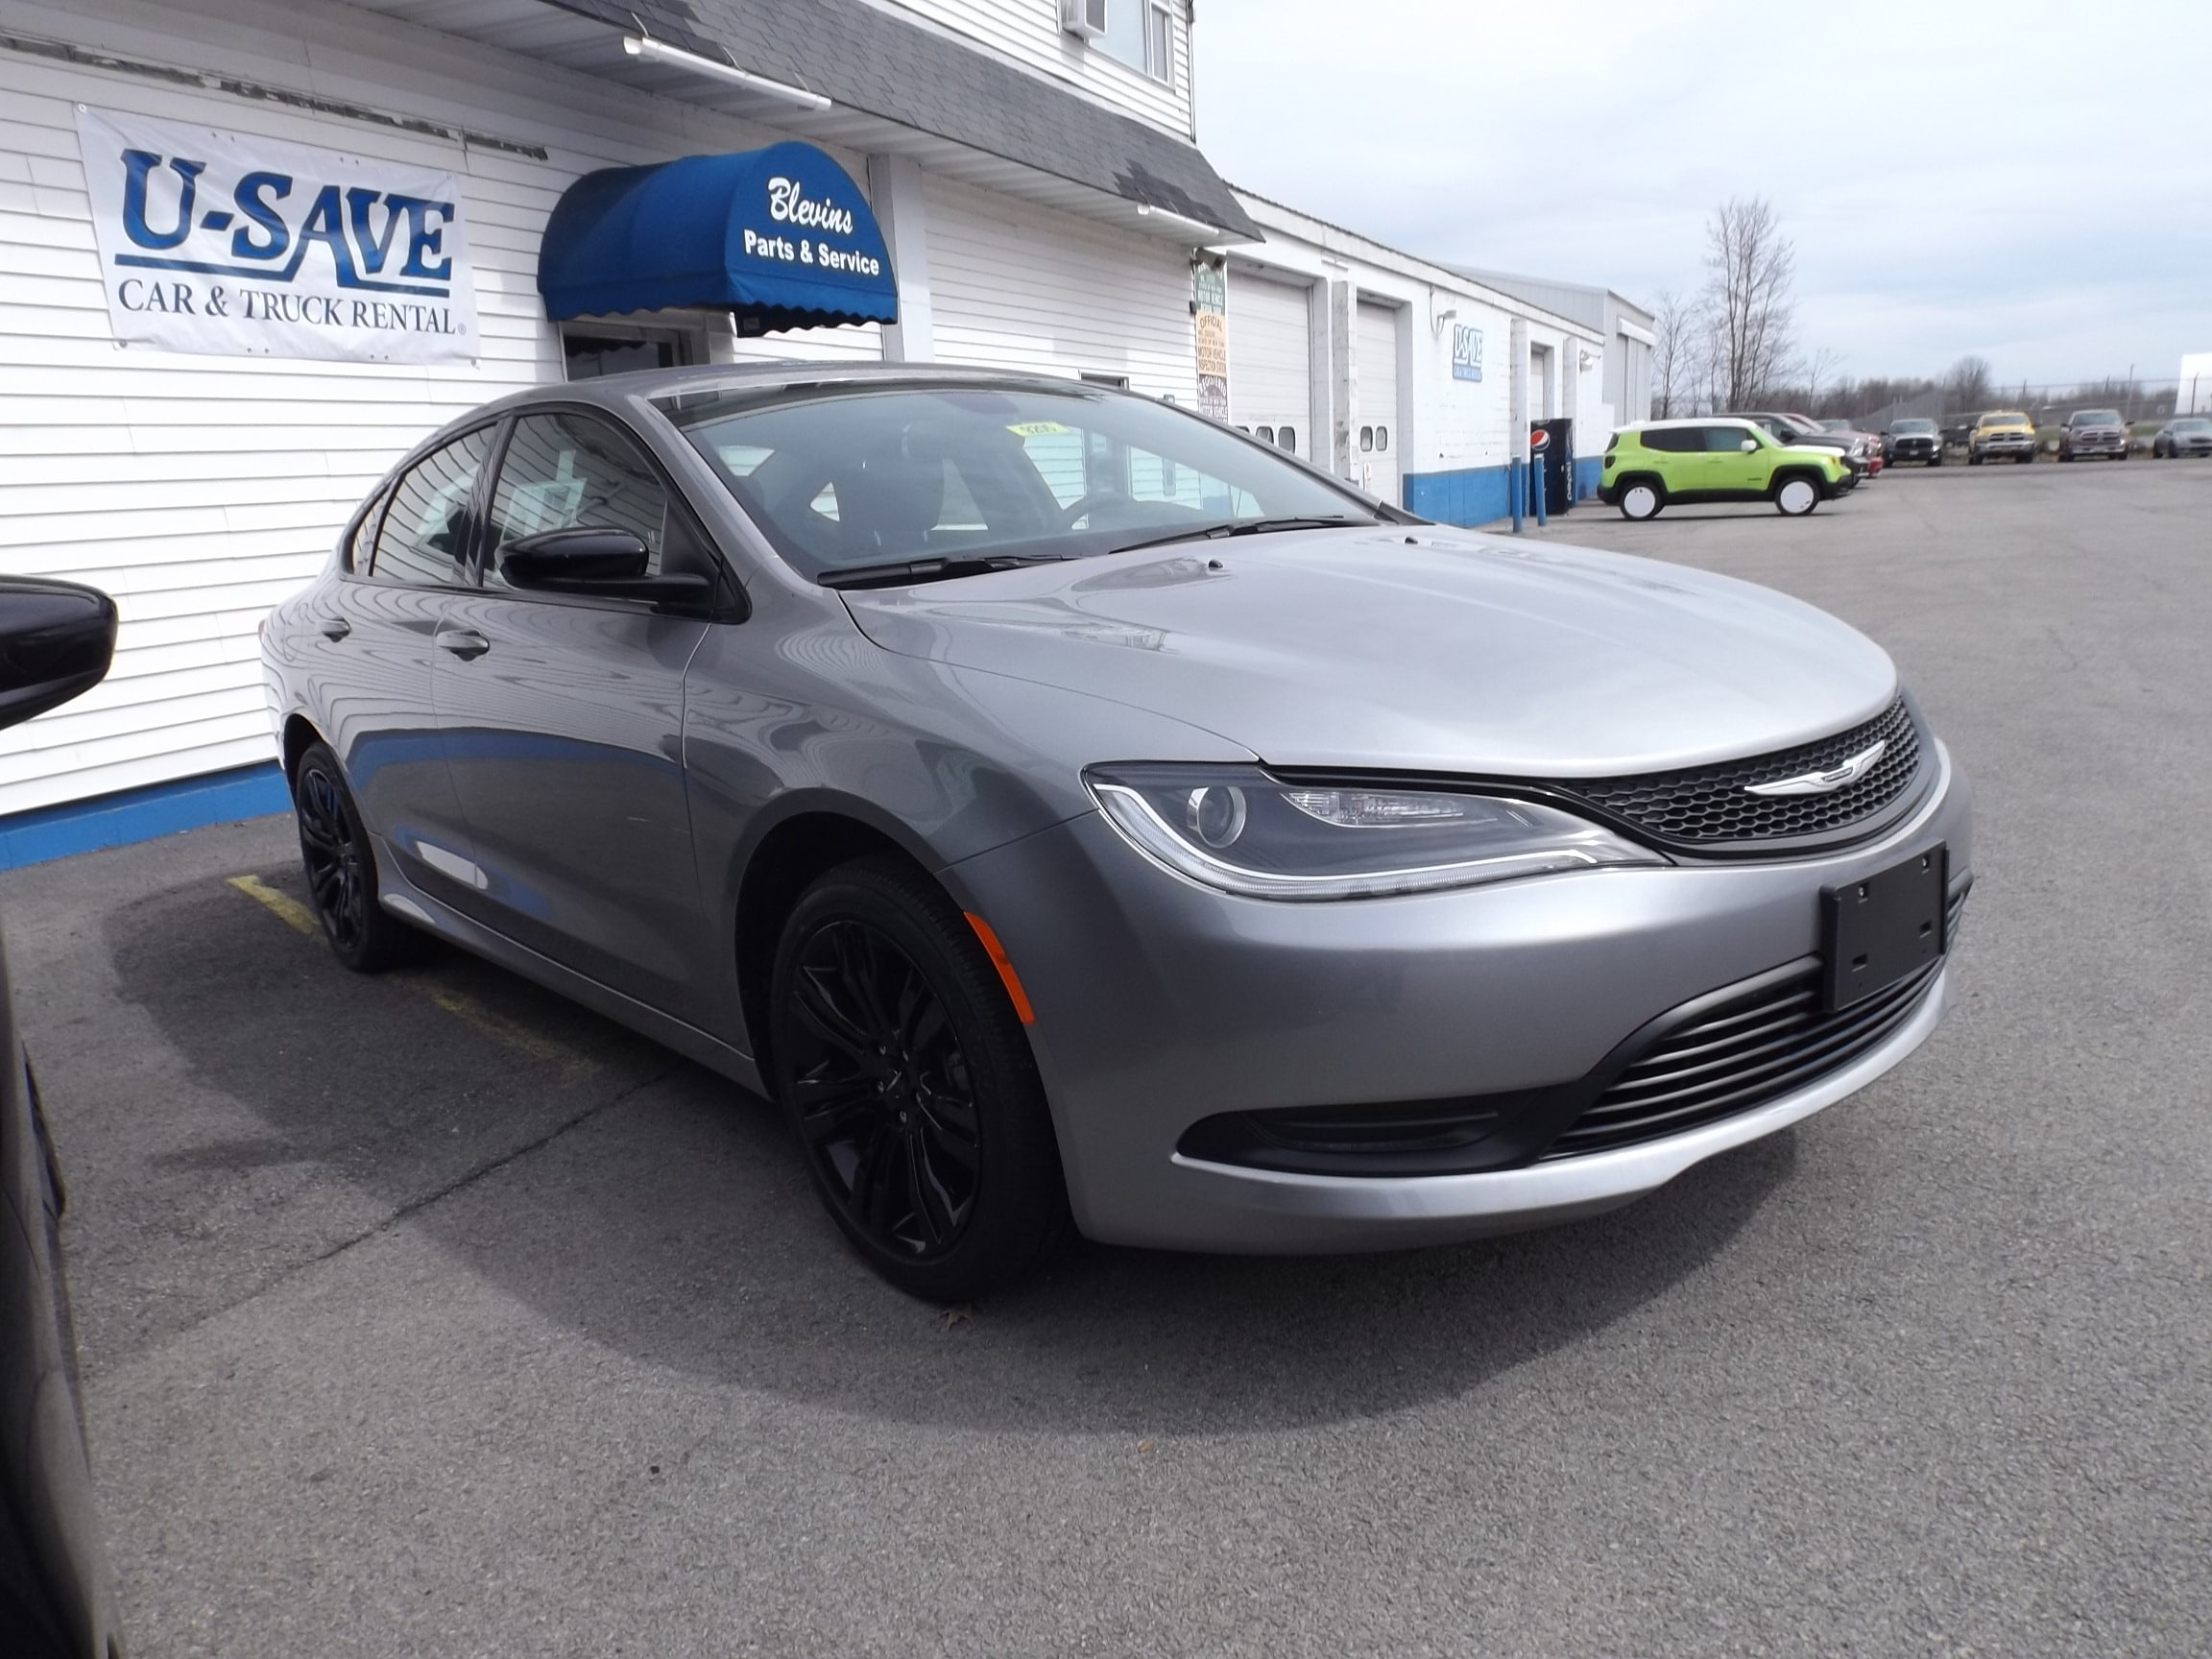 2017 Chrysler 200 USave Rental Car Sedan